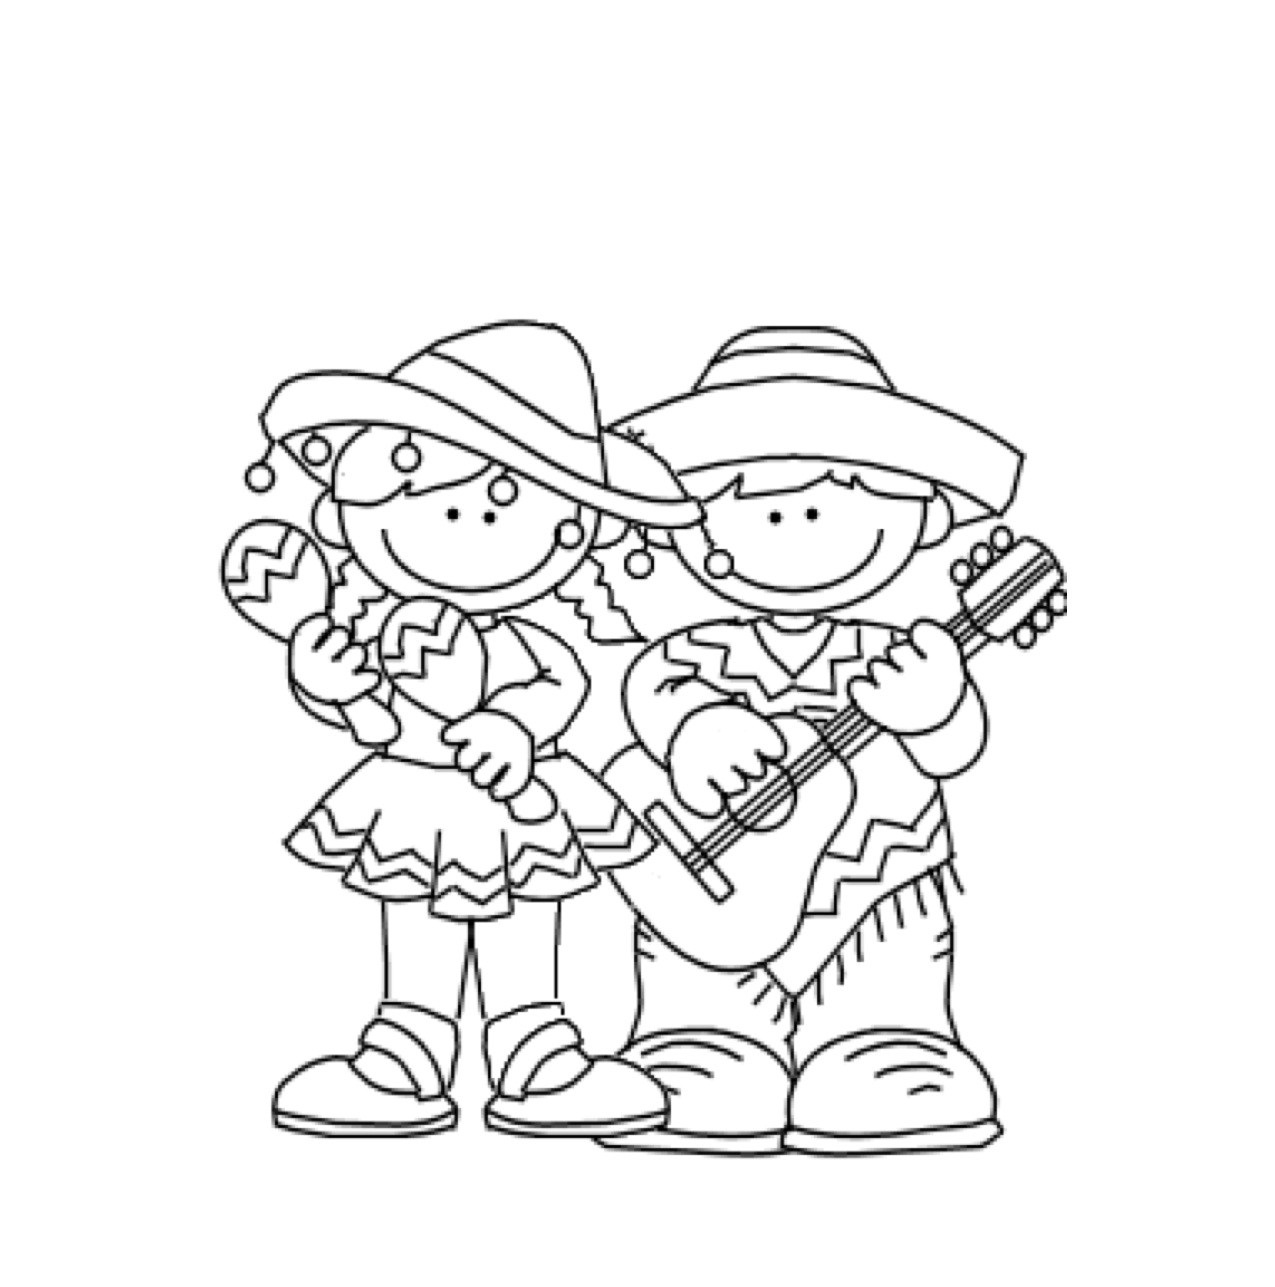 cinco de mayo coloring pages 11 coloring pictures cinco de mayo print color craft de pages cinco coloring mayo